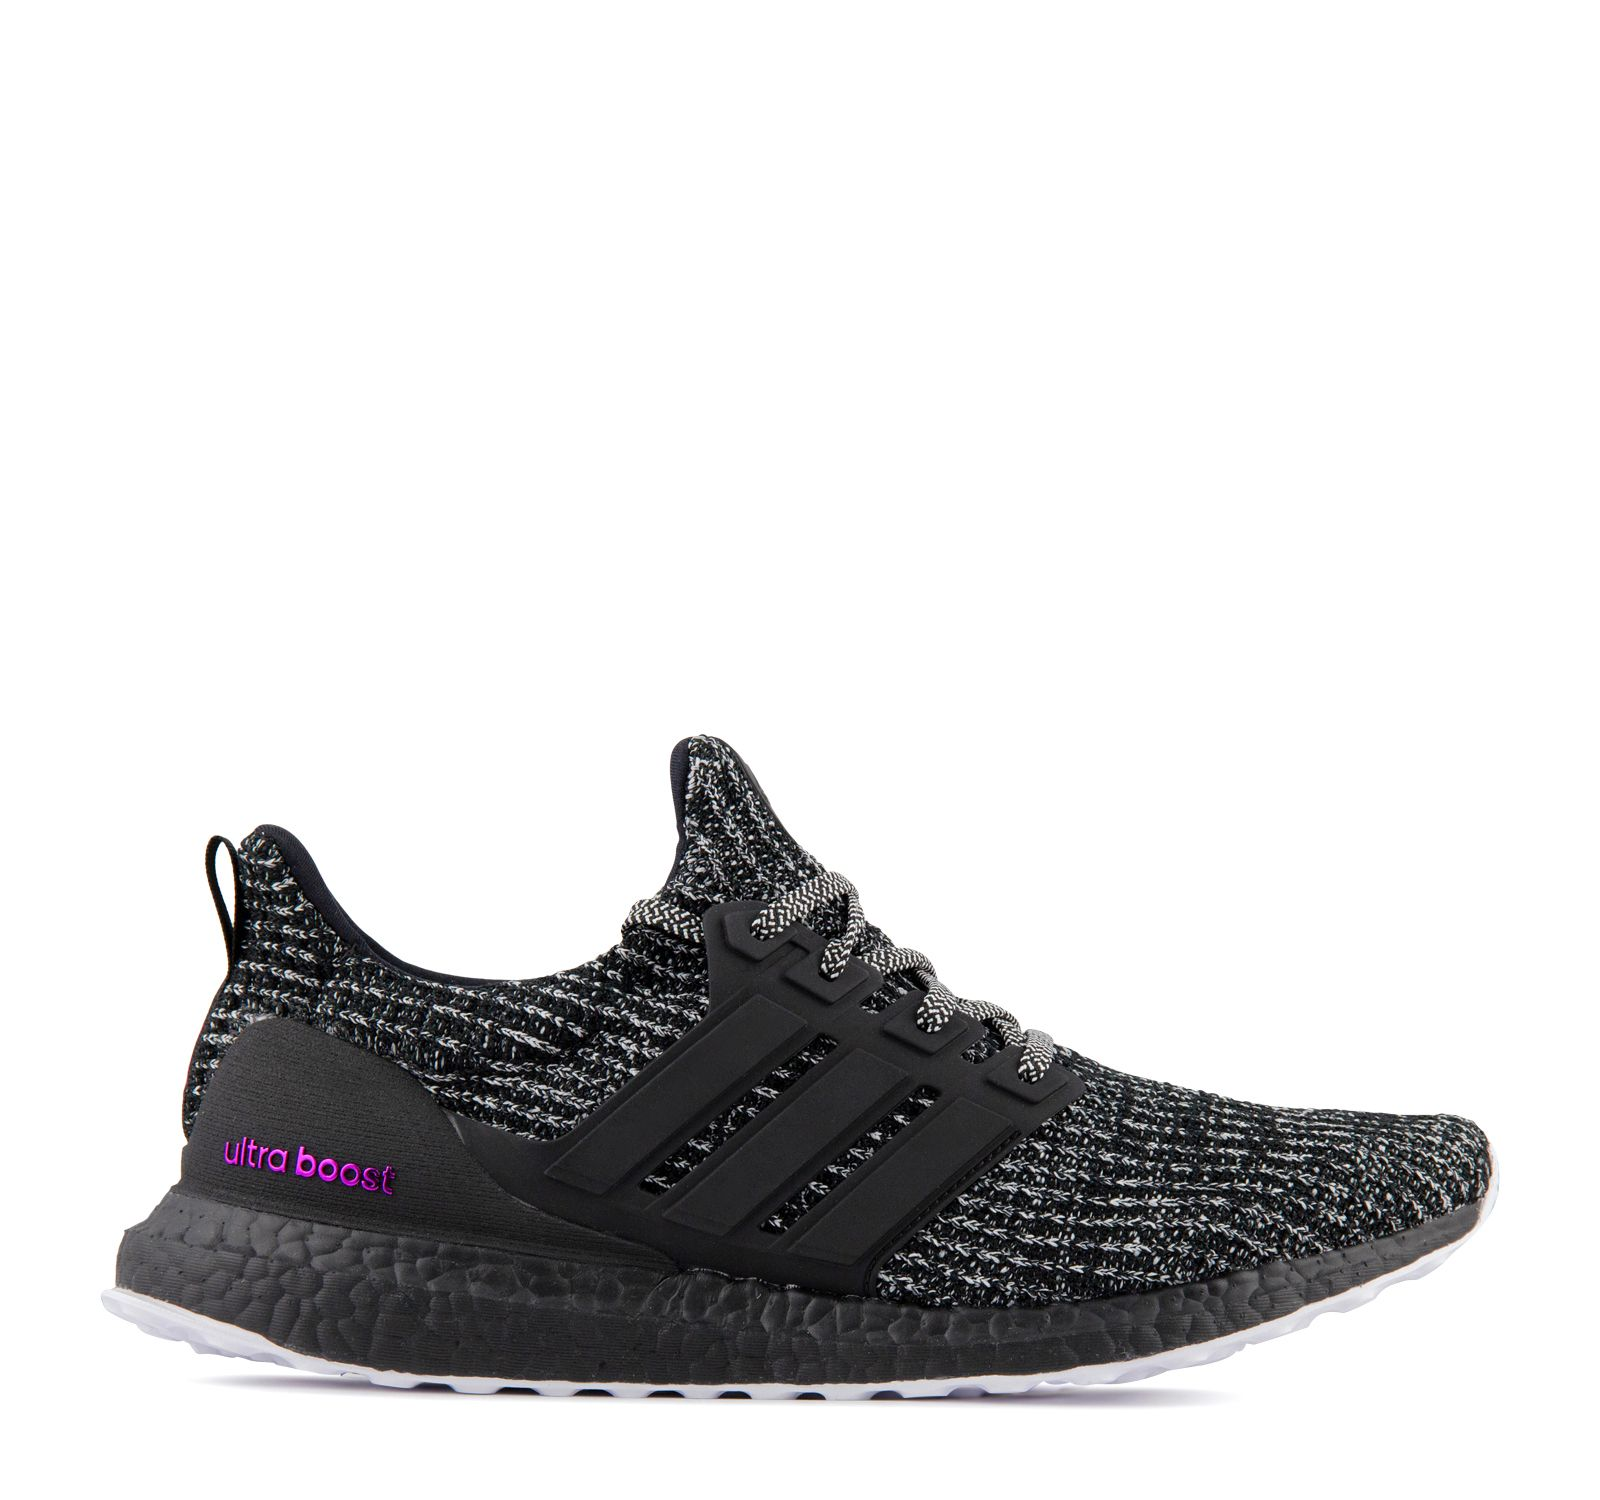 new product 44b91 7a83c Adidas UltraBOOST Breast Cancer Awareness BC0247 - Black ...